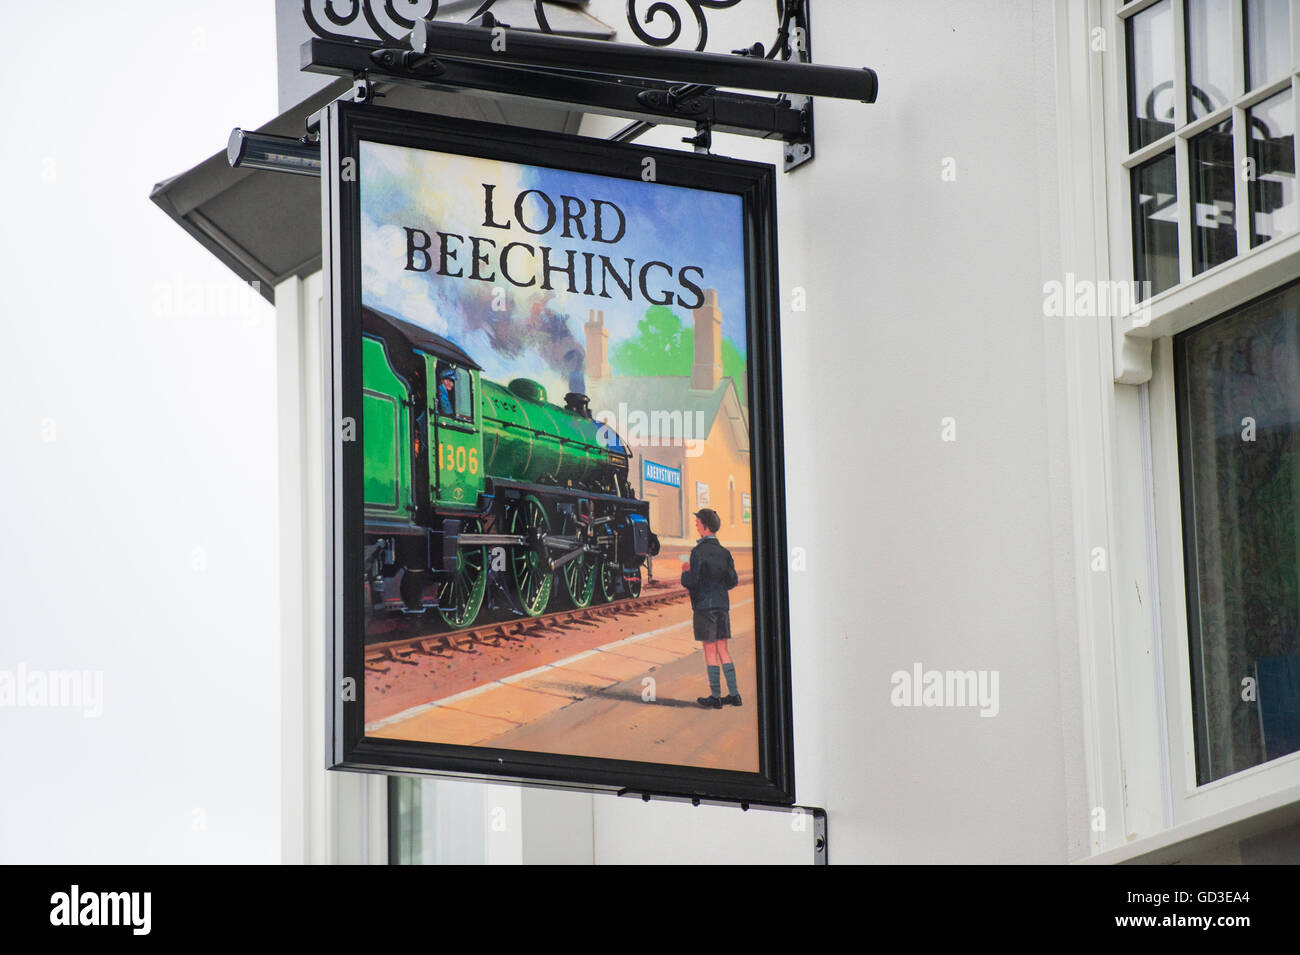 Exterior, signage at the Lord Beechings pub, owned by the